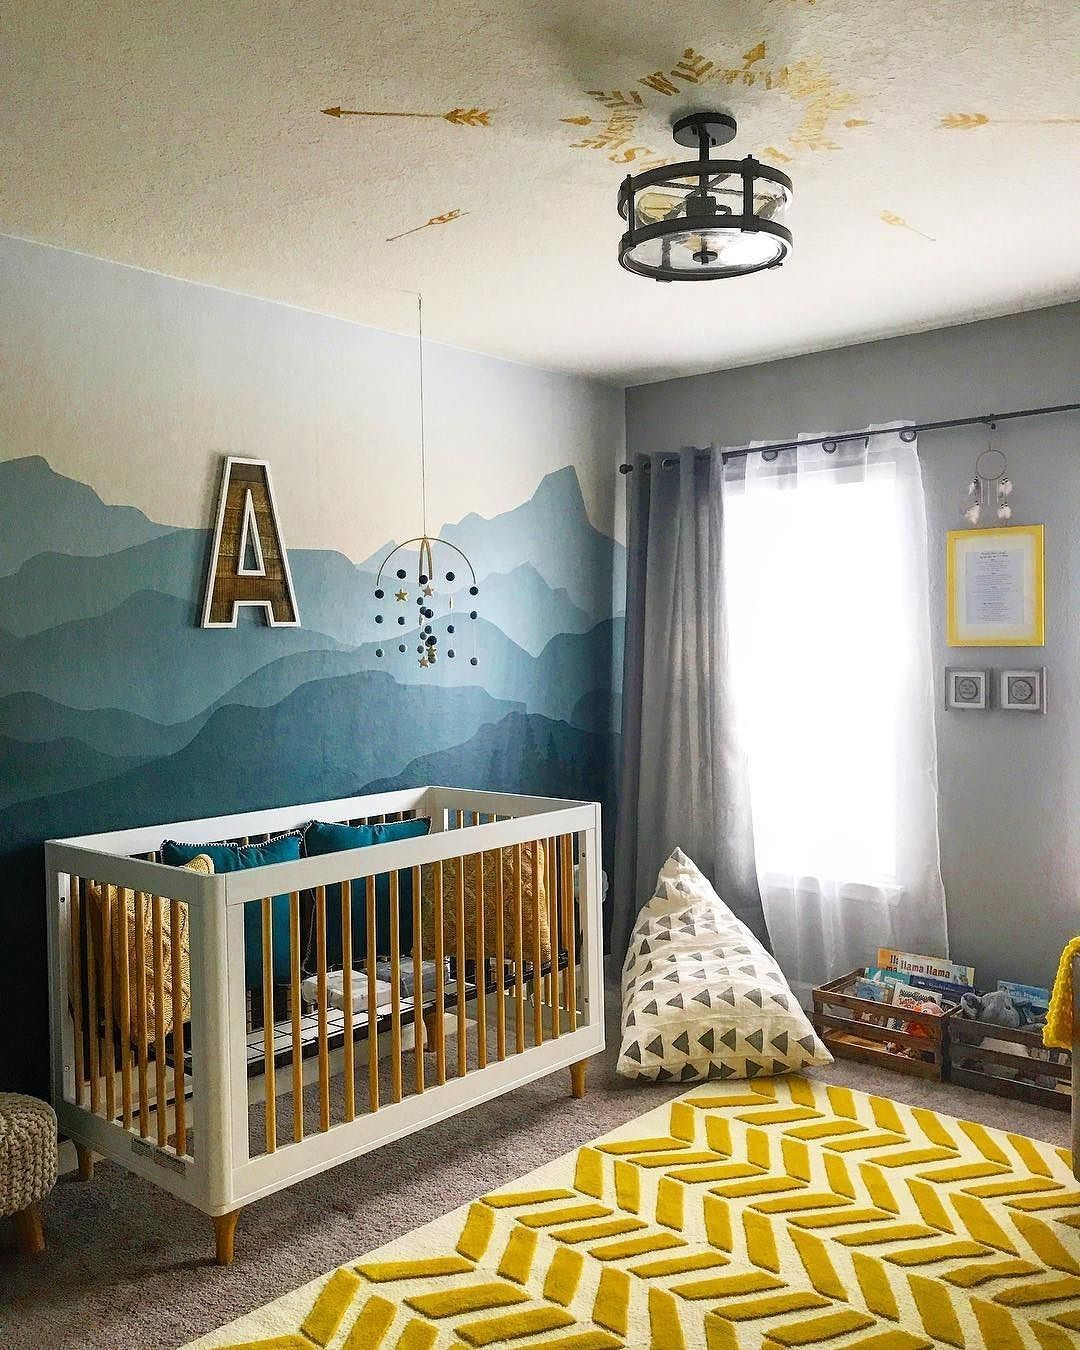 mustard yellow and teal blue nursery with mountain